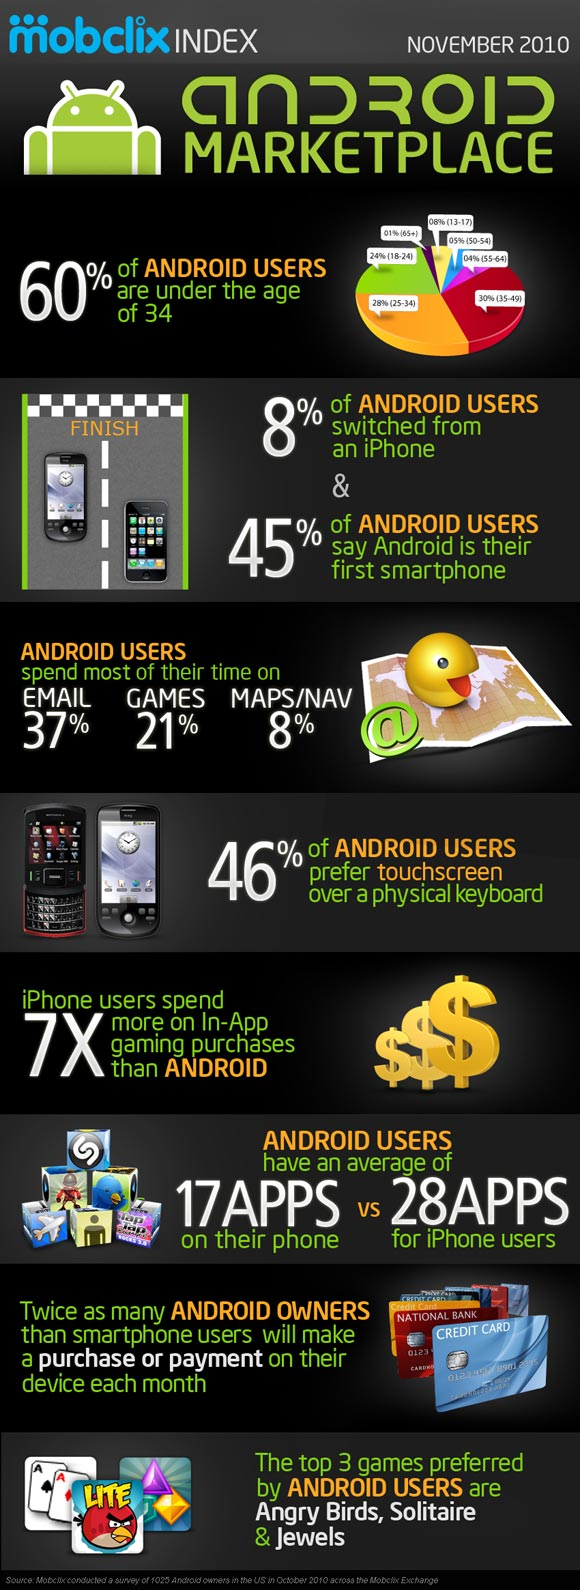 Android users prefer QWERTY keyboards, love Angry Birds (study)